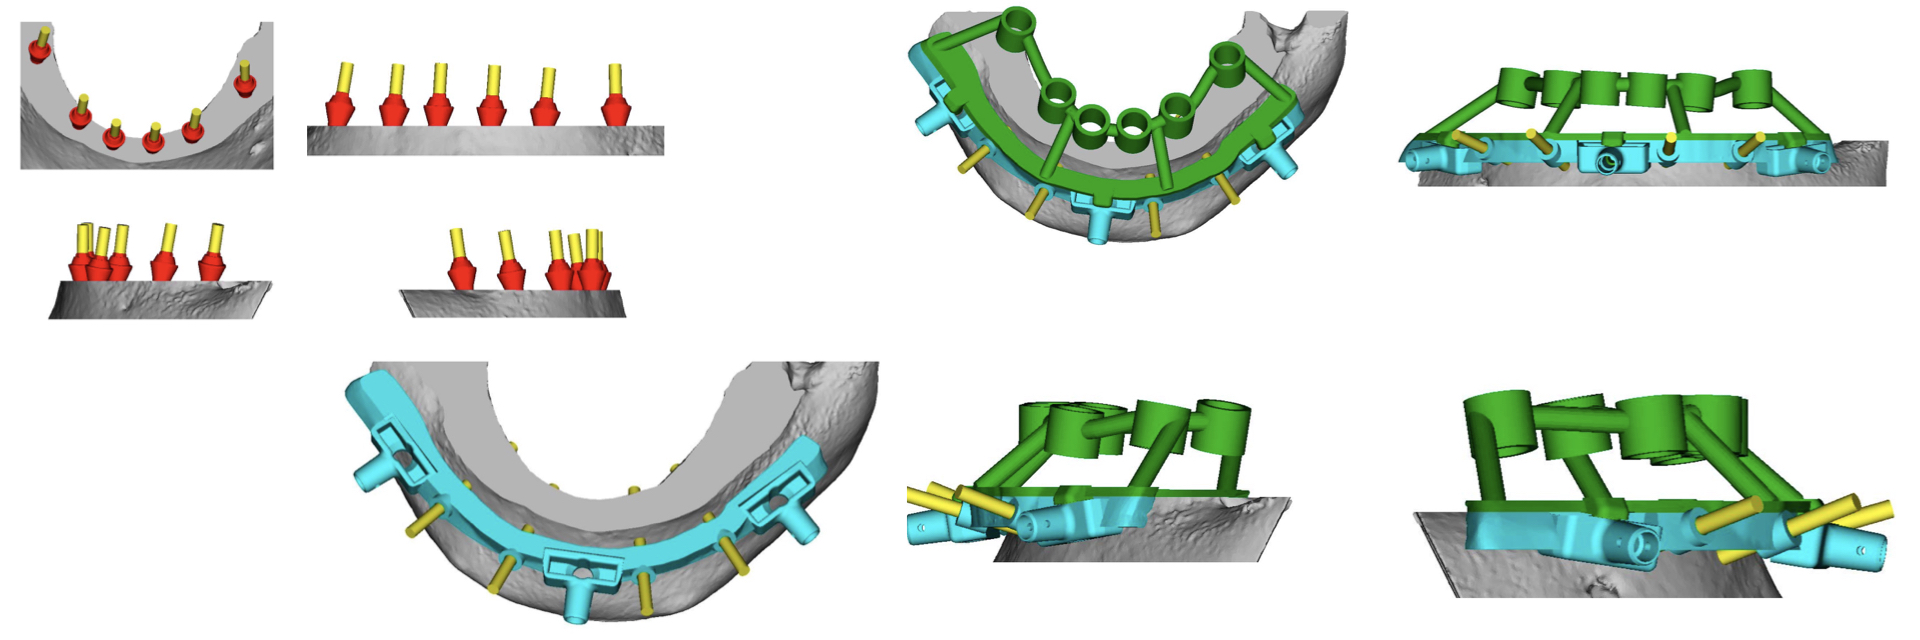 Digital-Workflow-for-Full-Arch-Implant-Supported-Teeth-Chrome-GuidedSmile-Kazemi-Oral-Surgery-Bethesda-Implant-Dentist.014